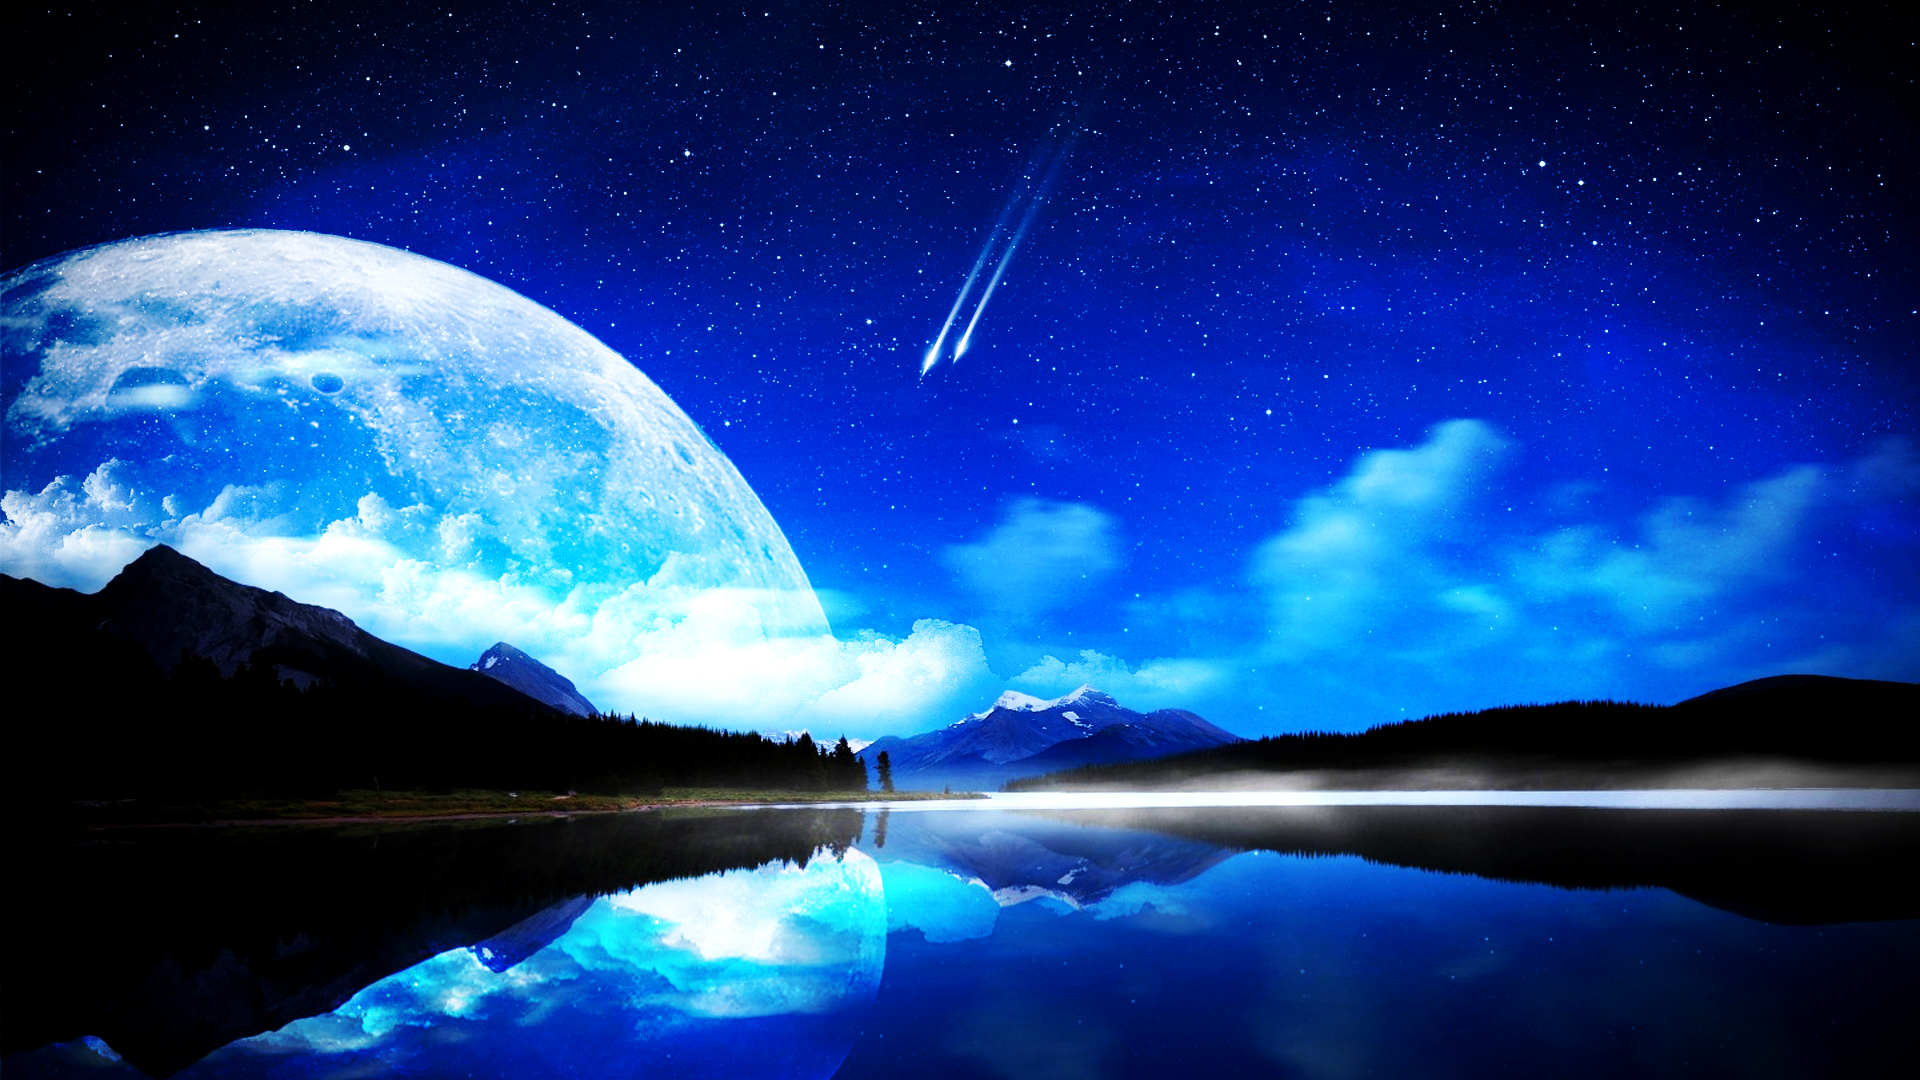 Best Hd Screensavers Full Moon Wallpapers And Screensavers Wallpaper Moon Images